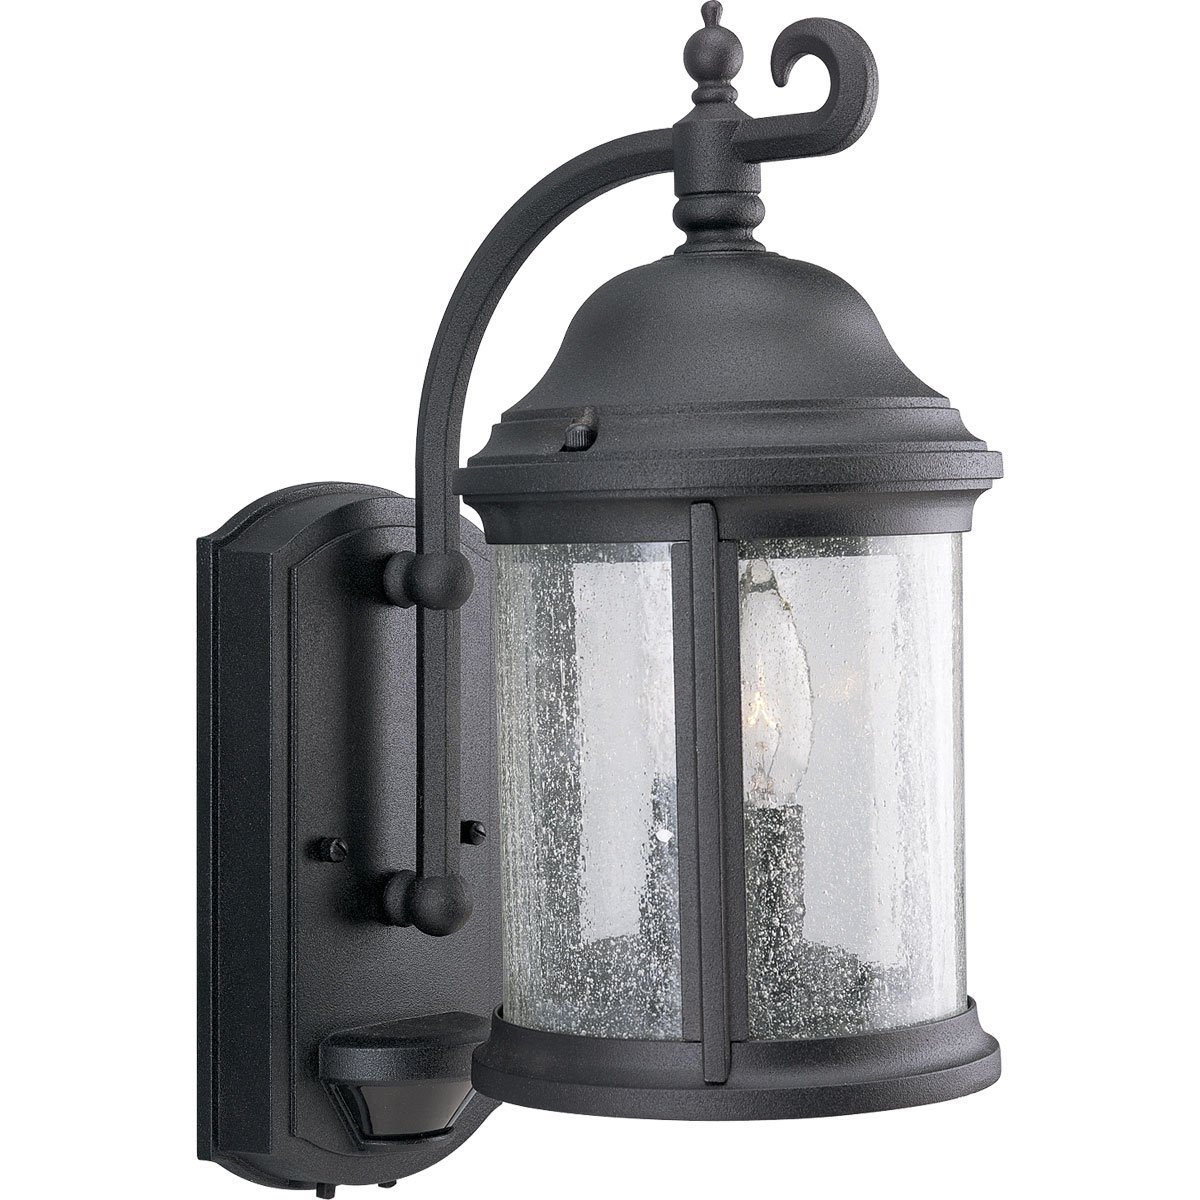 Progress lighting p5854 31 2 light ashmore collection wall lantern progress lighting p5854 31 2 light ashmore collection wall lantern with motion sensor textured black wall porch lights amazon workwithnaturefo